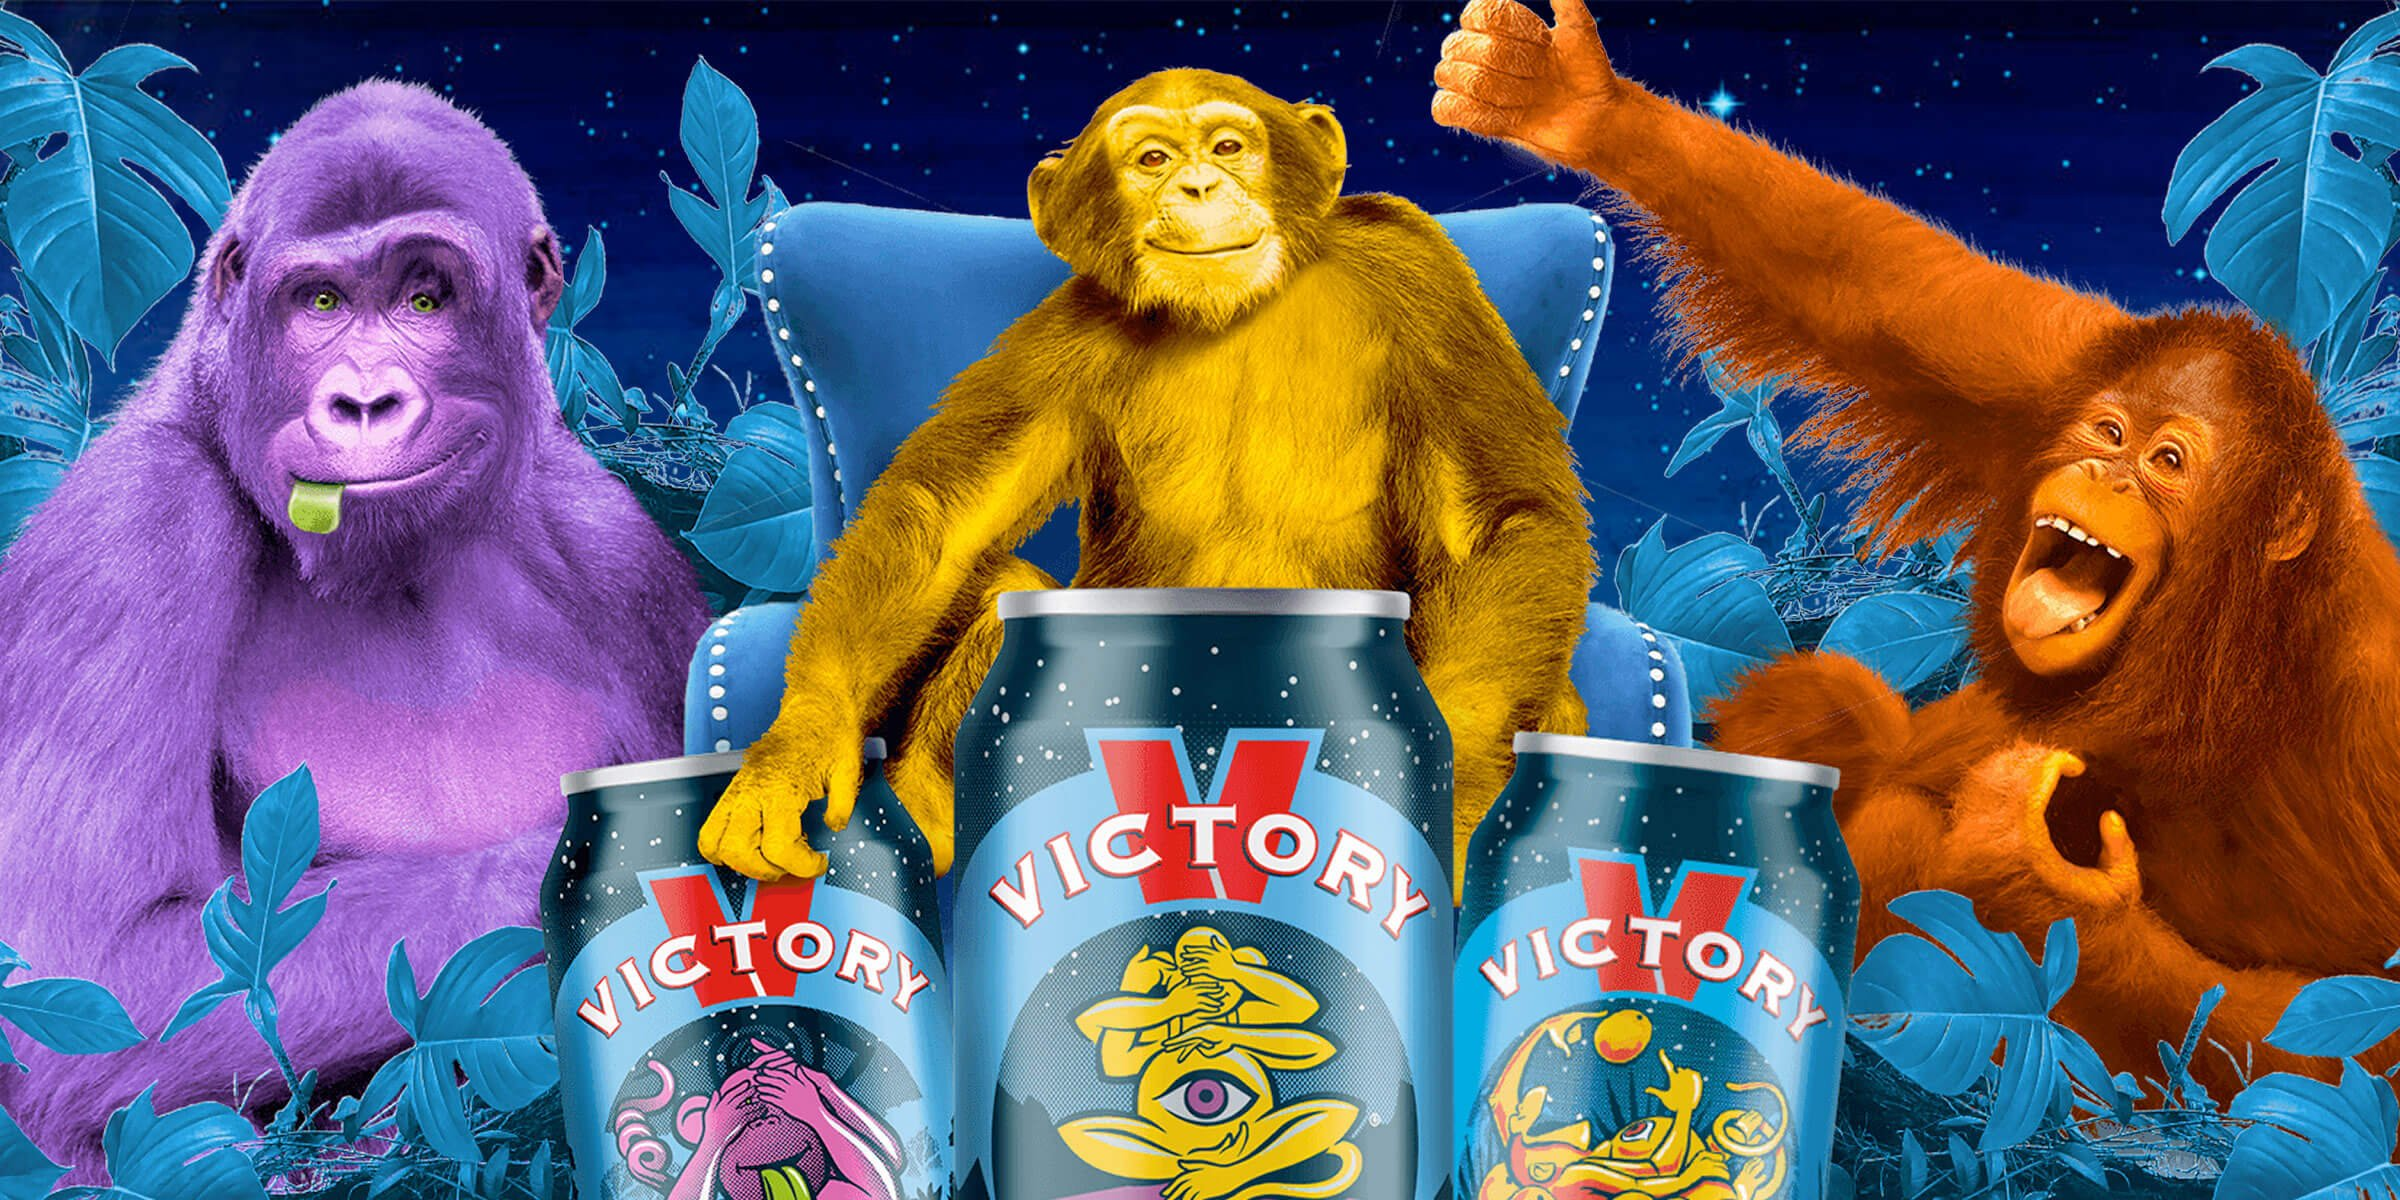 Victory Brewing Company announced its 2020 marketing campaign, bringing characters from its Monkey family of beers to life to spread laughter to its fans.